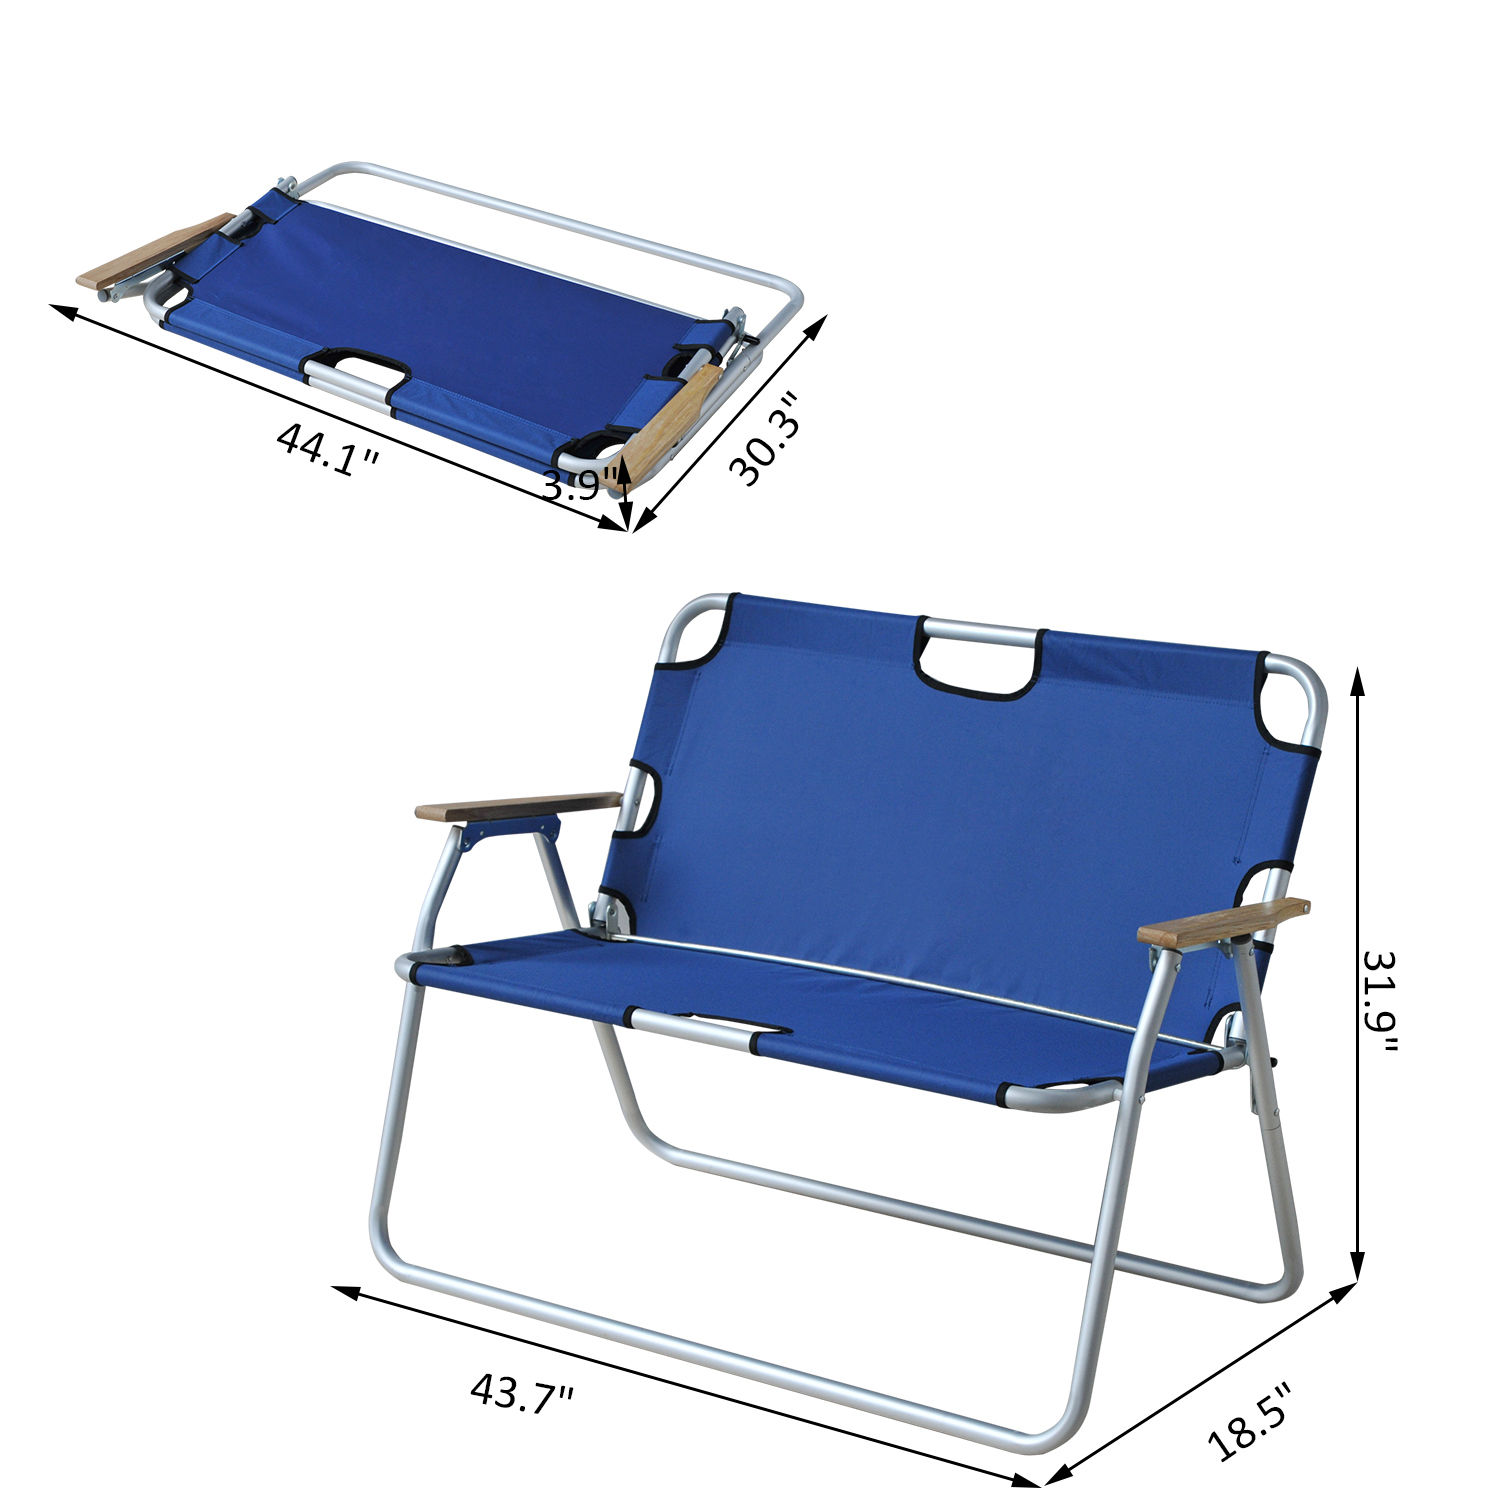 Swell Outsunny 2 Person Folding Aluminum Love Seat Camping Chair Blue Theyellowbook Wood Chair Design Ideas Theyellowbookinfo